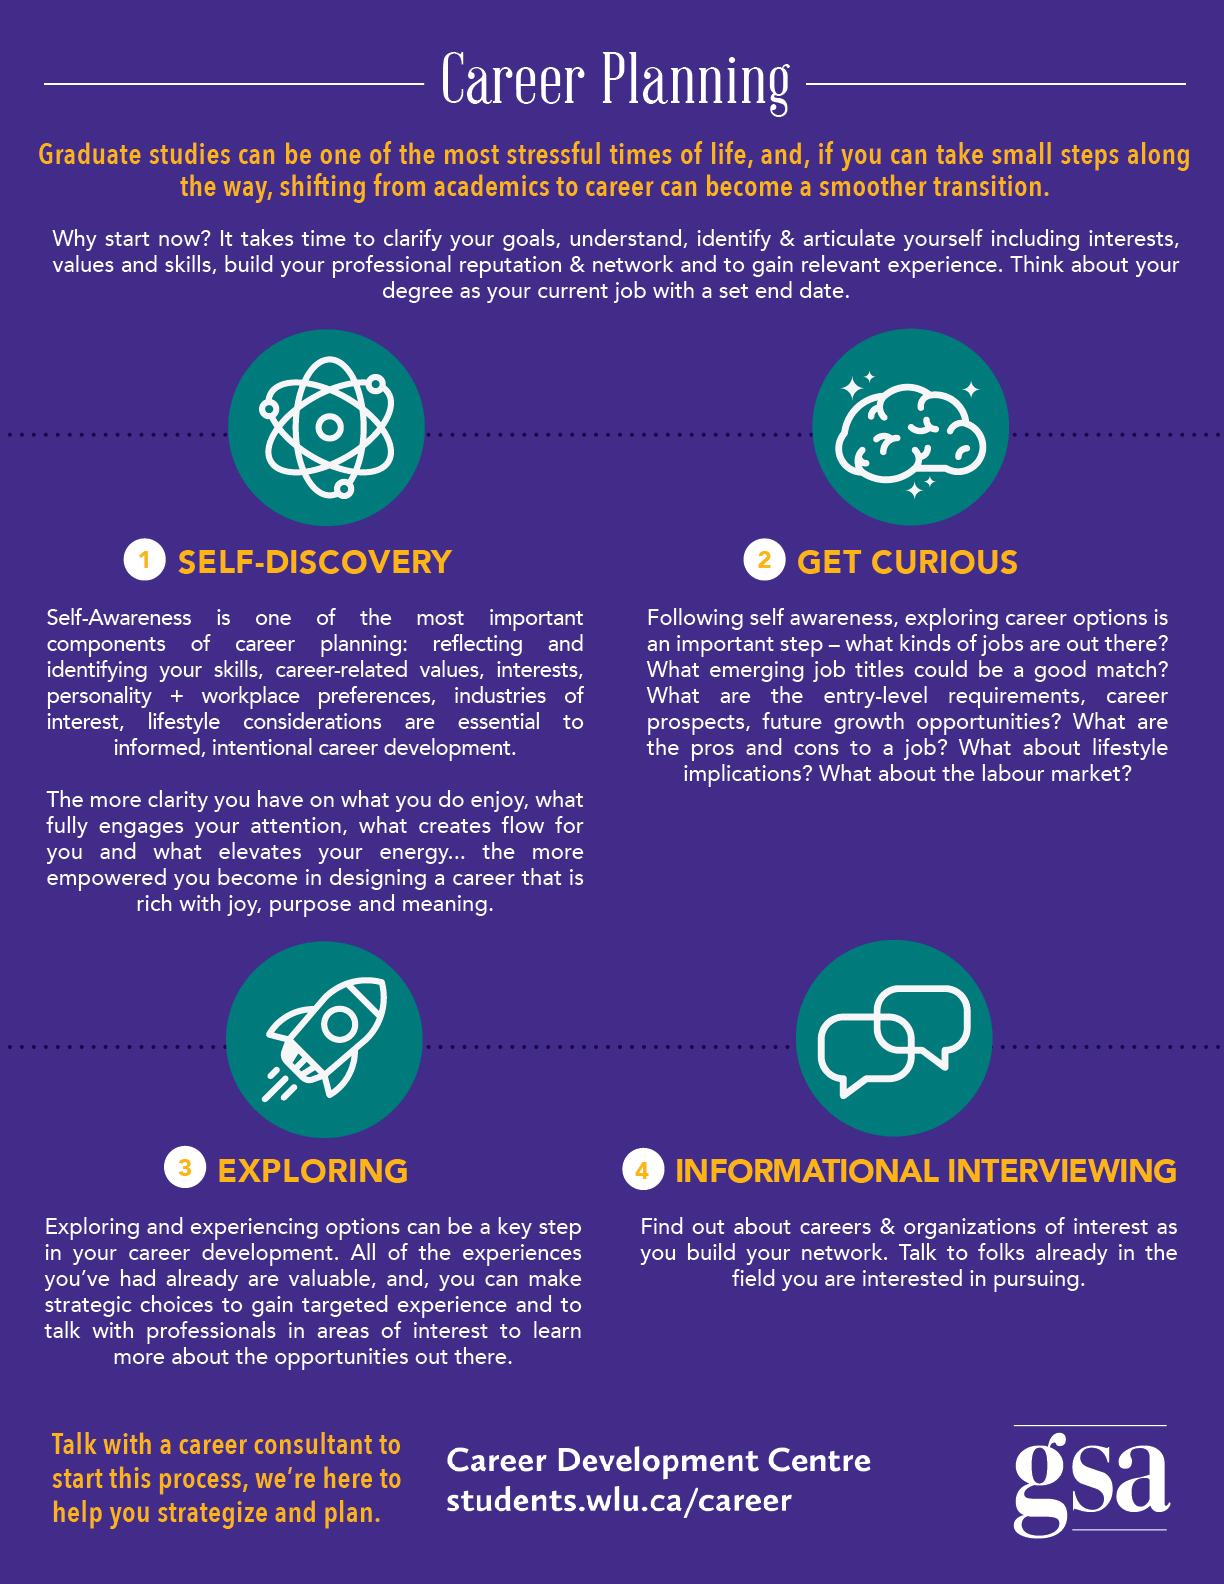 Career Planning Infographic download.